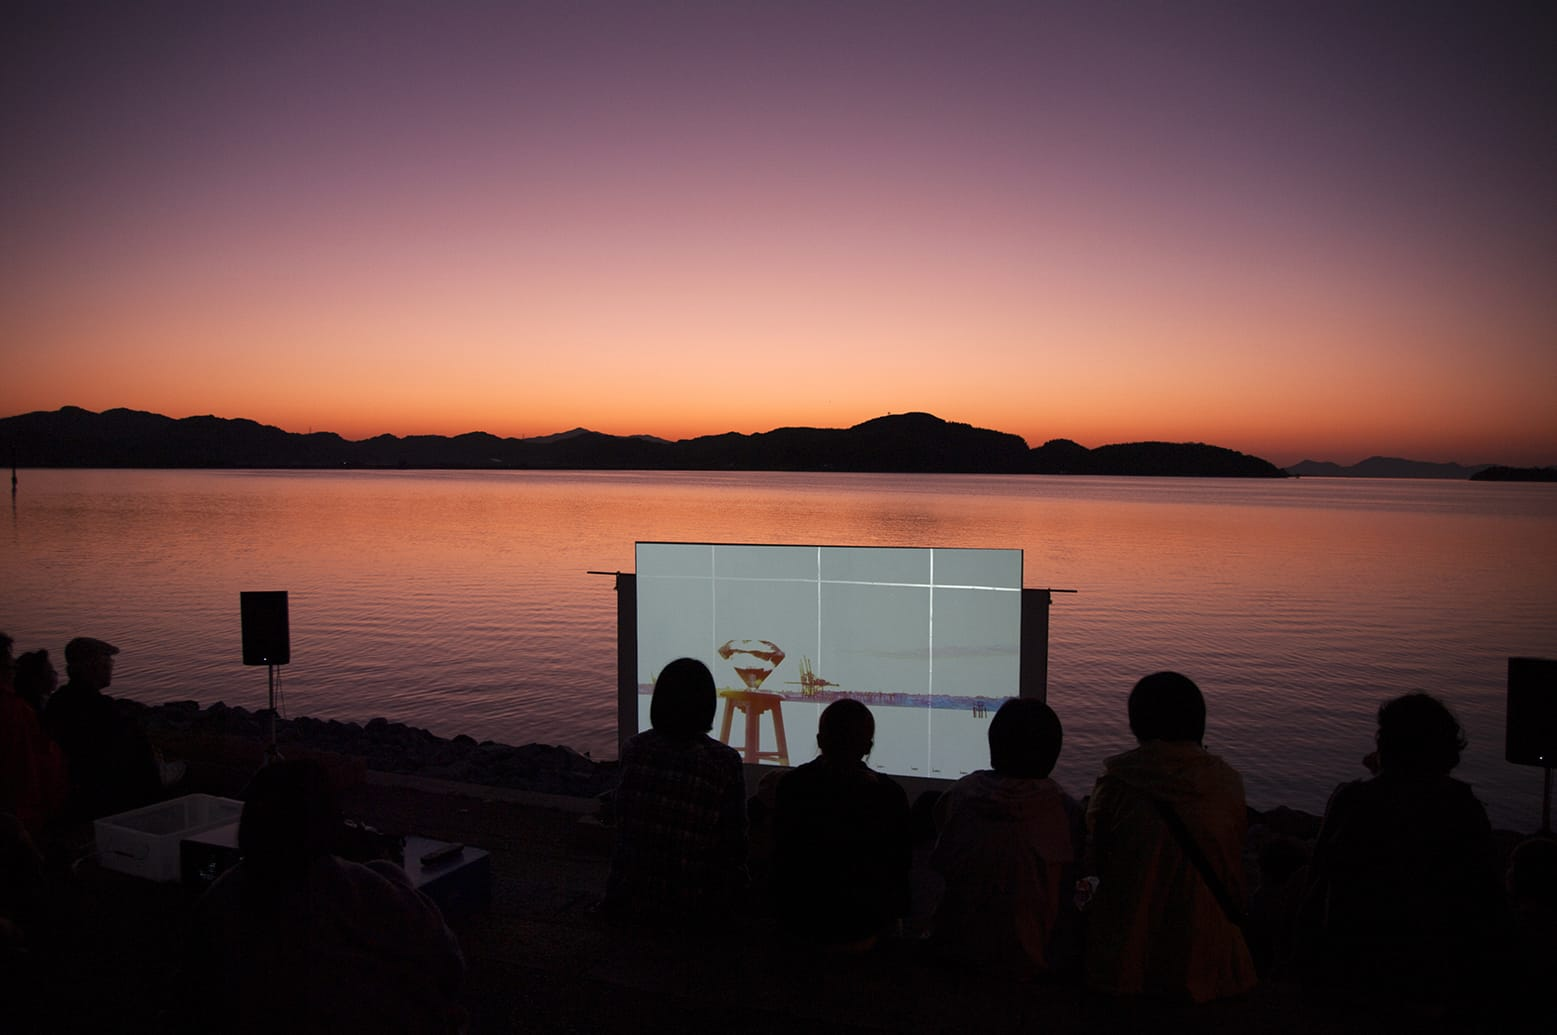 Khan Lee, Hearts and Arrows,2013(projection mapping at Nakaumi 2014). photo by Shin Shiroeda